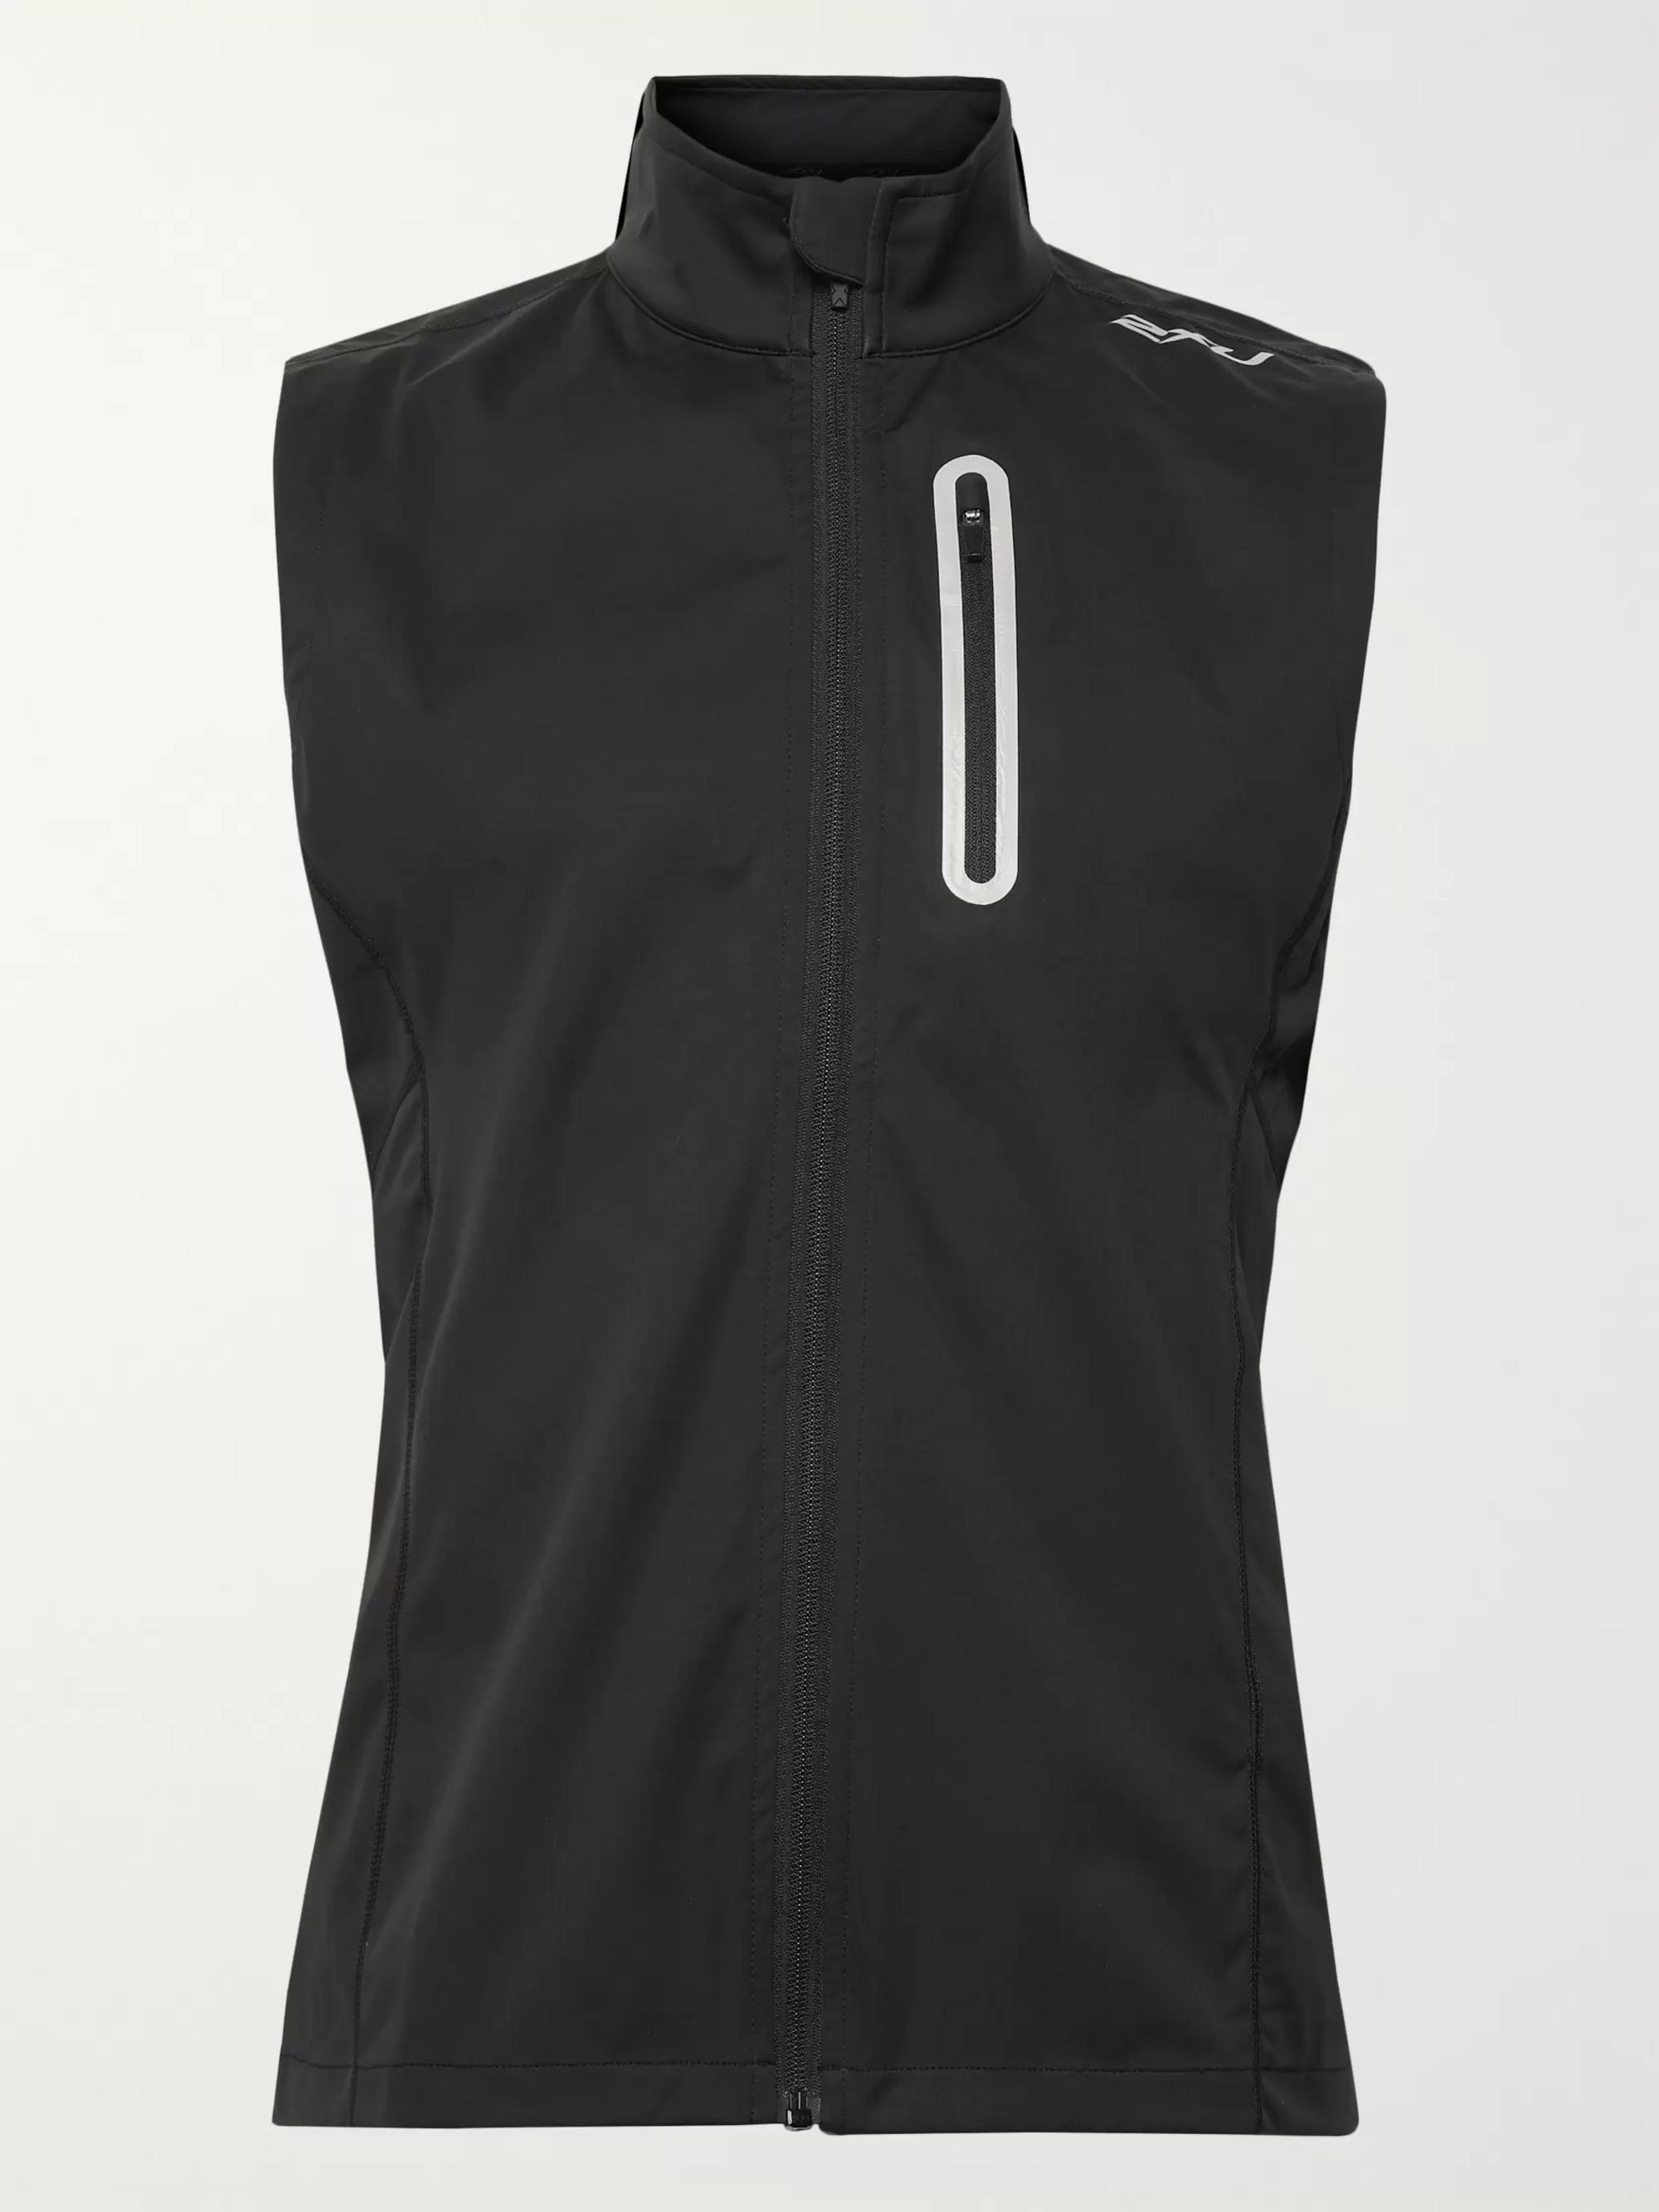 2XU Wind Defence Membrane Waterproof Stretch-Jersey Gilet